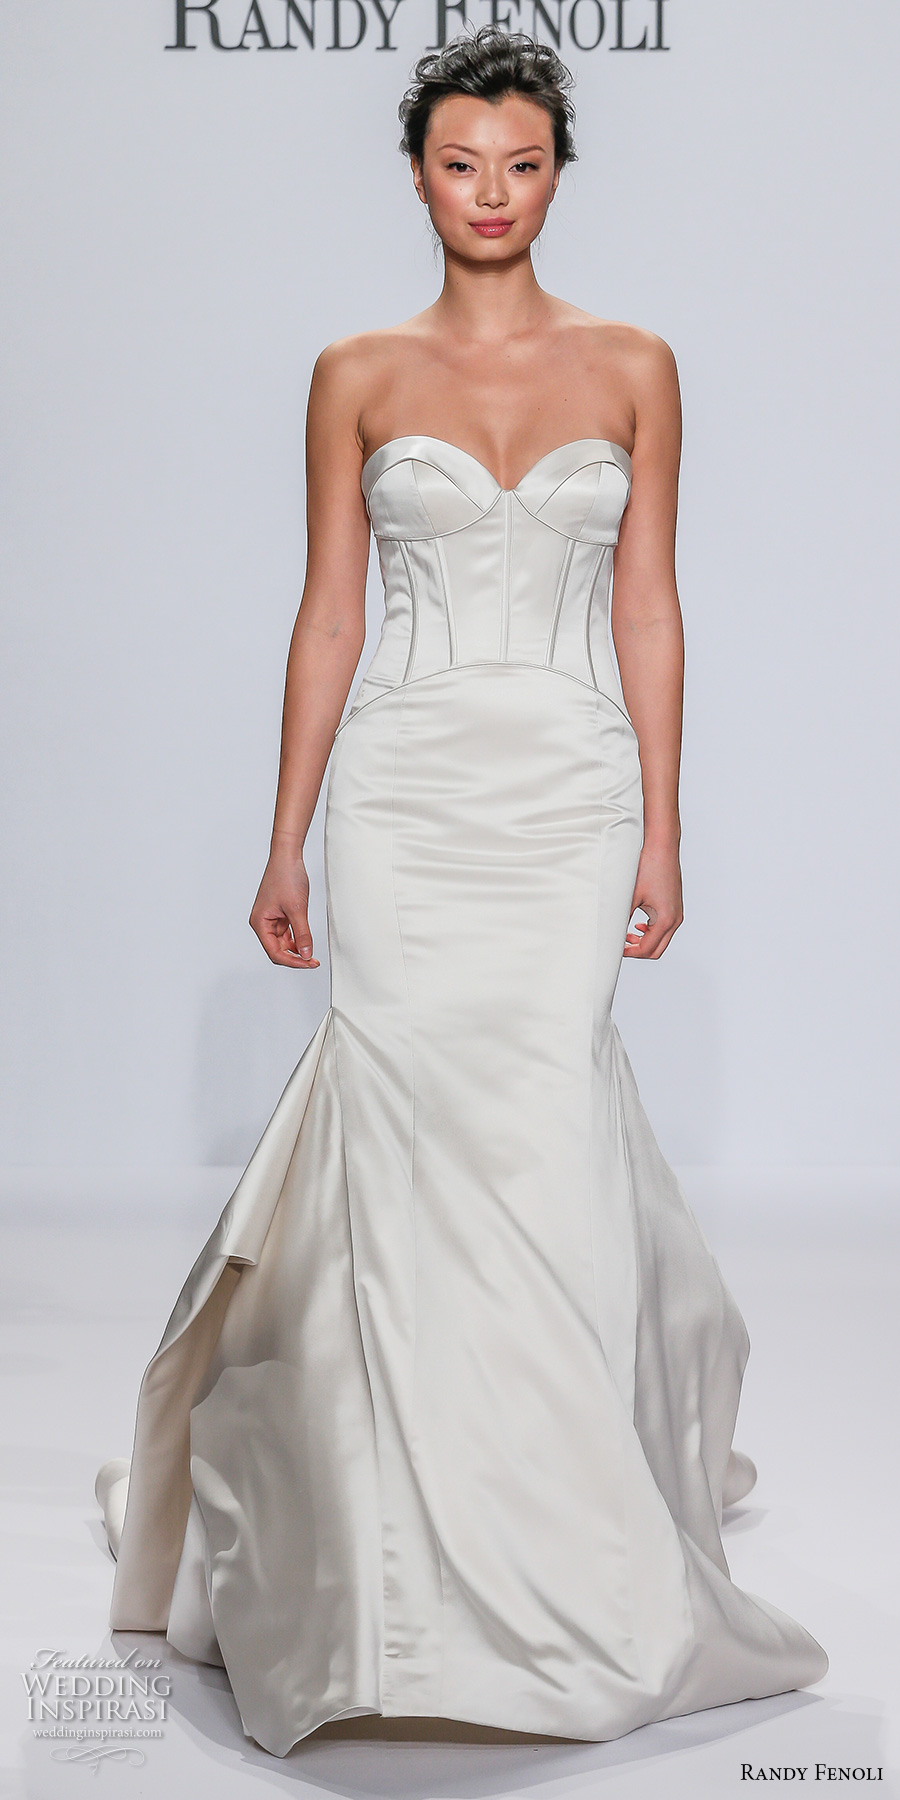 randy fenoli spring 2018 bridal strapless sweetheart neckline simple busiter satin elegant fit and flare wedding dress chapel train (09) mv